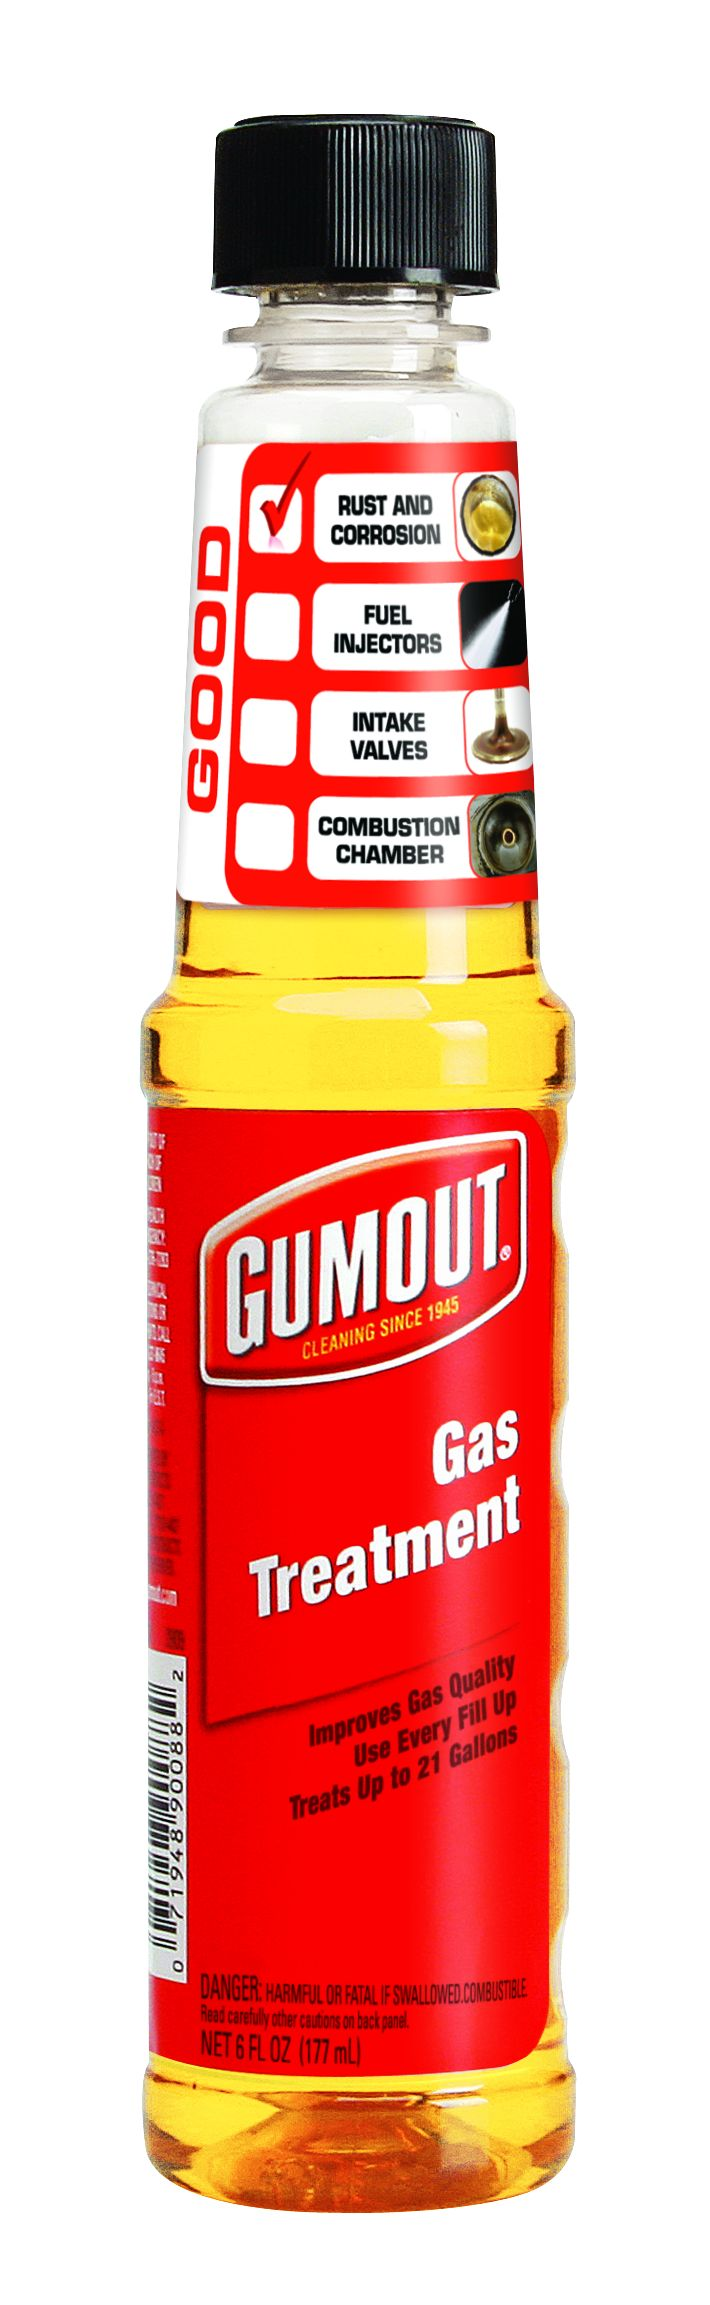 800001370 Gumout Rust Treatment Fight Against Rust And Corrosion/